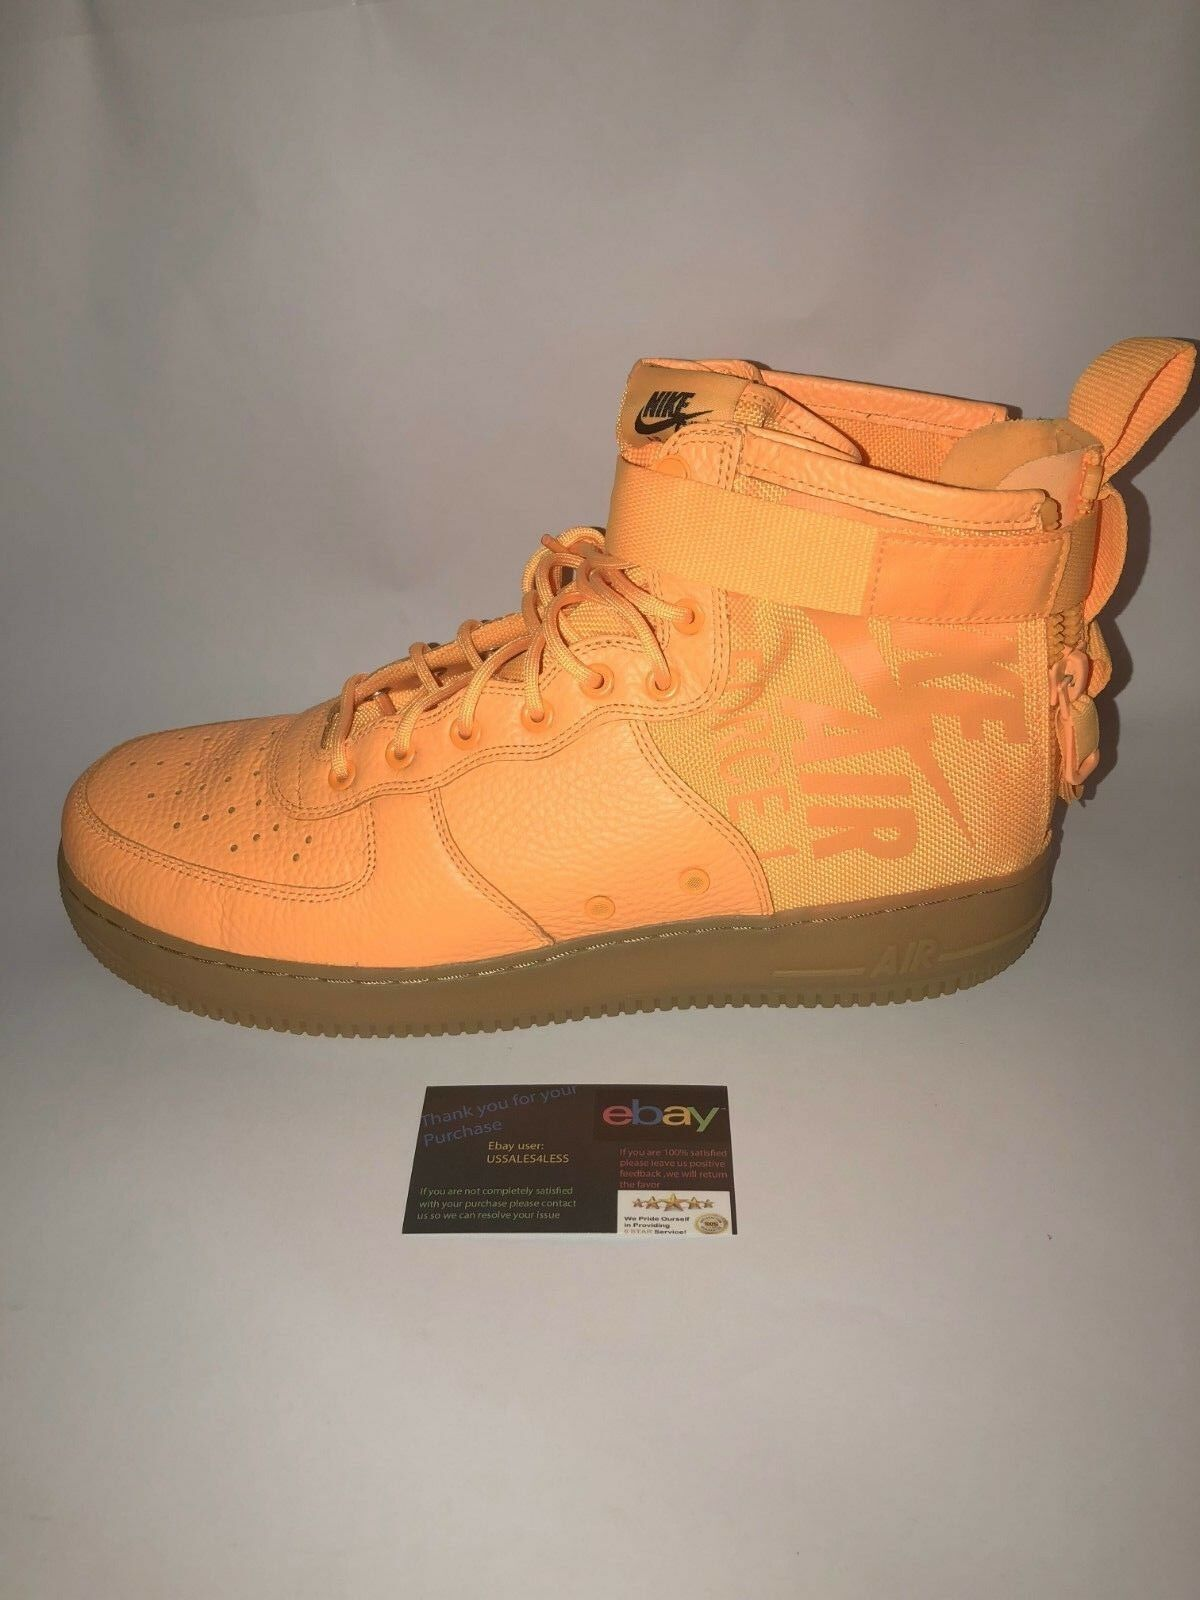 Brand discount Nike SF Air Force 1 Mid Odell Beckham AF1 NEW Laser Orange  917753-801 Comfortable